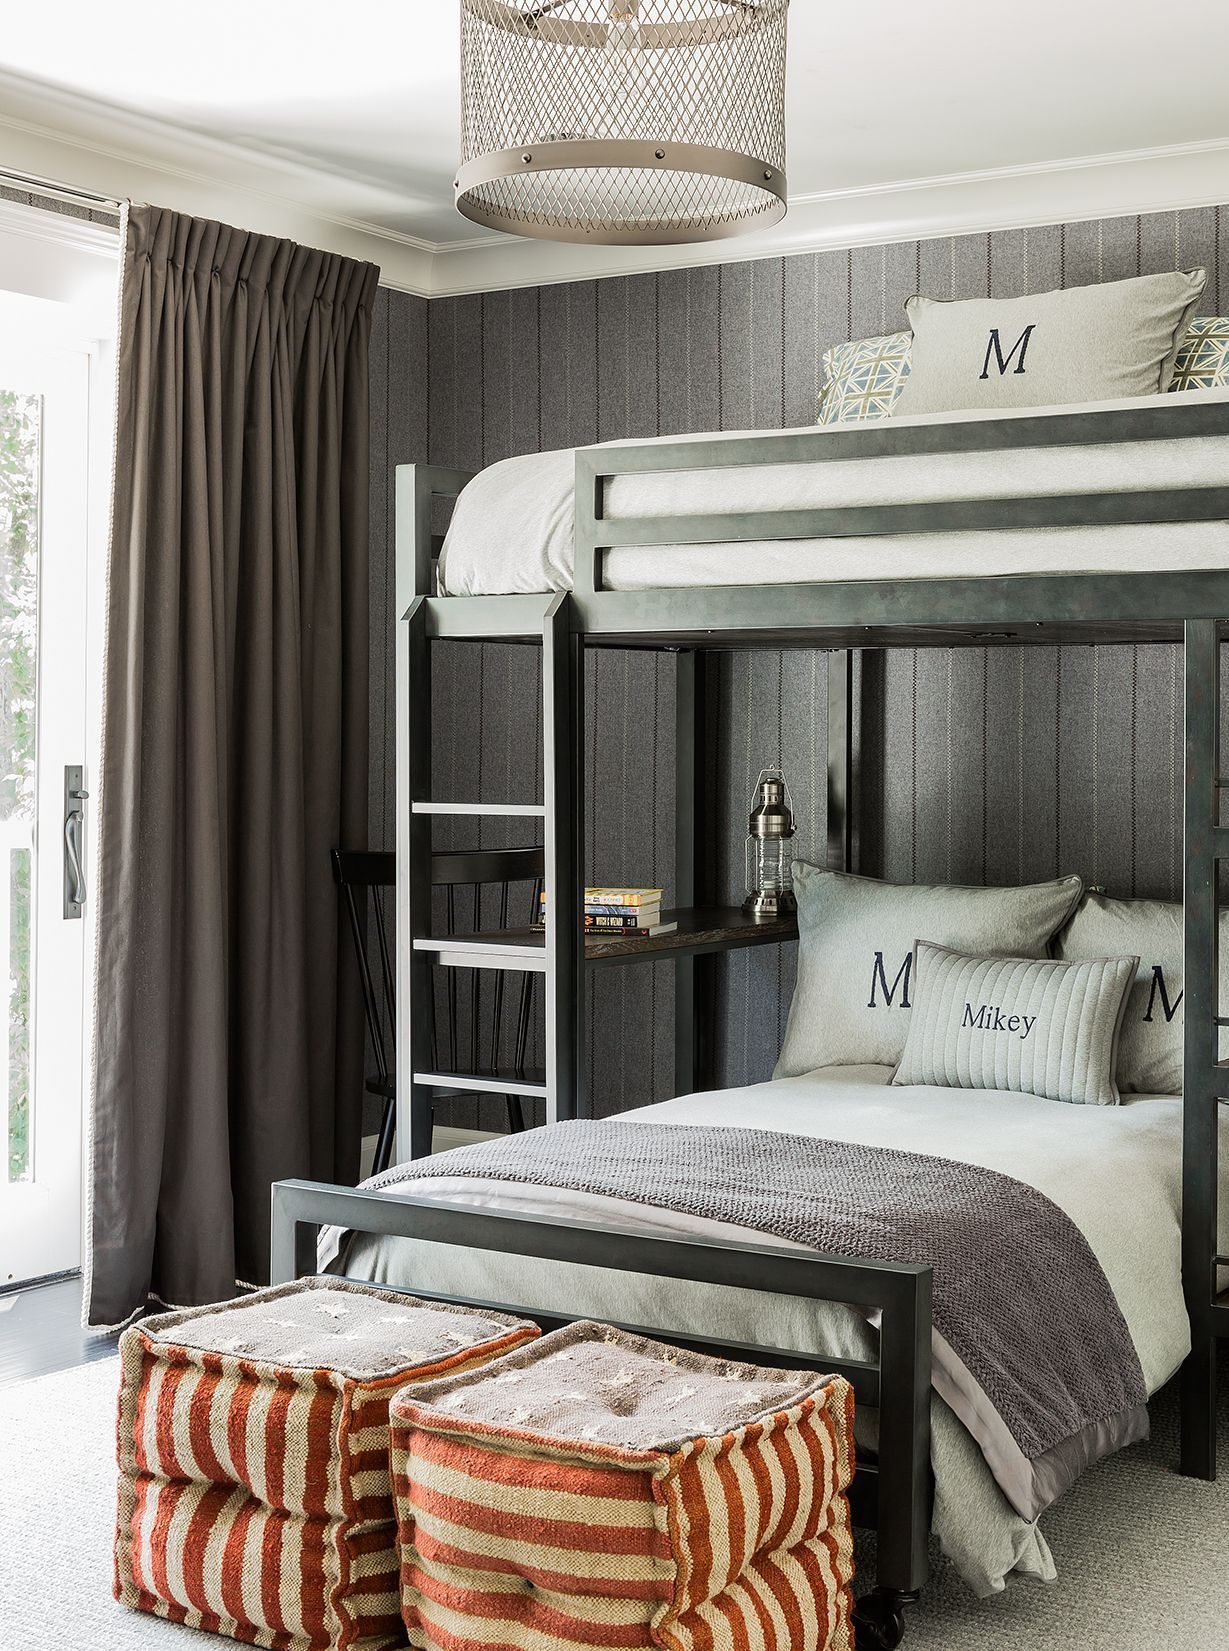 45 Best Boys Bedrooms Designs Ideas And Decor Inspiration Bunk Bed Designs Boy Bedroom Design Bunk Beds Boys